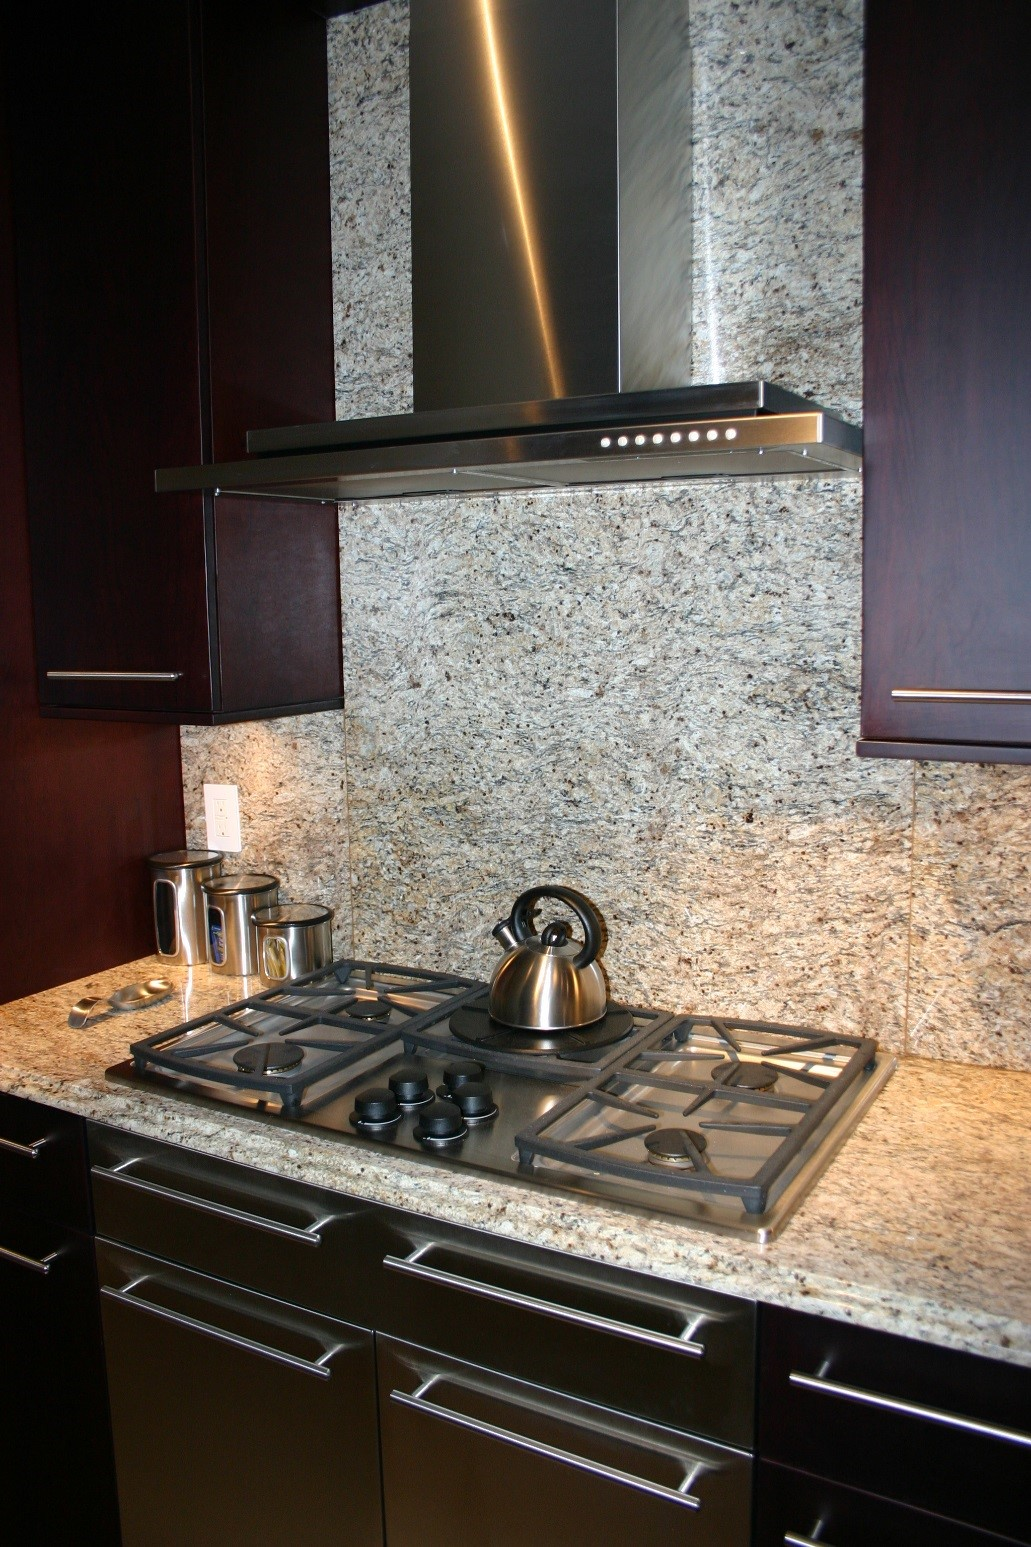 Countertop Vent : ... countertop all the way through to the backsplash and around the vent